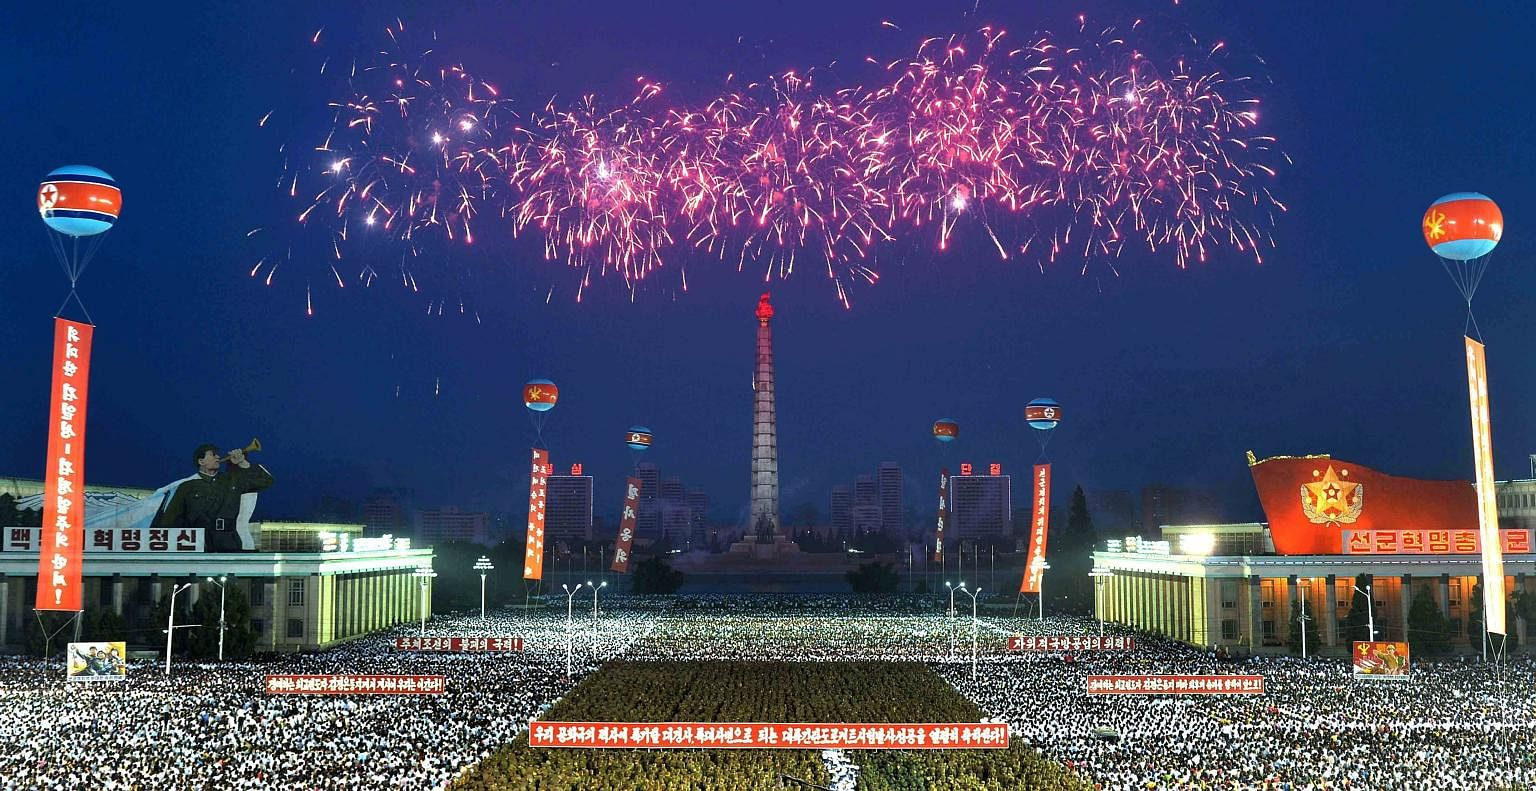 Thousands of officials, soldiers and citizens gathered at Kim Il Sung Square in Pyongyang on Thursday to celebrate the successful launch of an intercontinental ballistic missile. Analysts said the Hwasong-14 rocket had a range of up to 8,000km, which